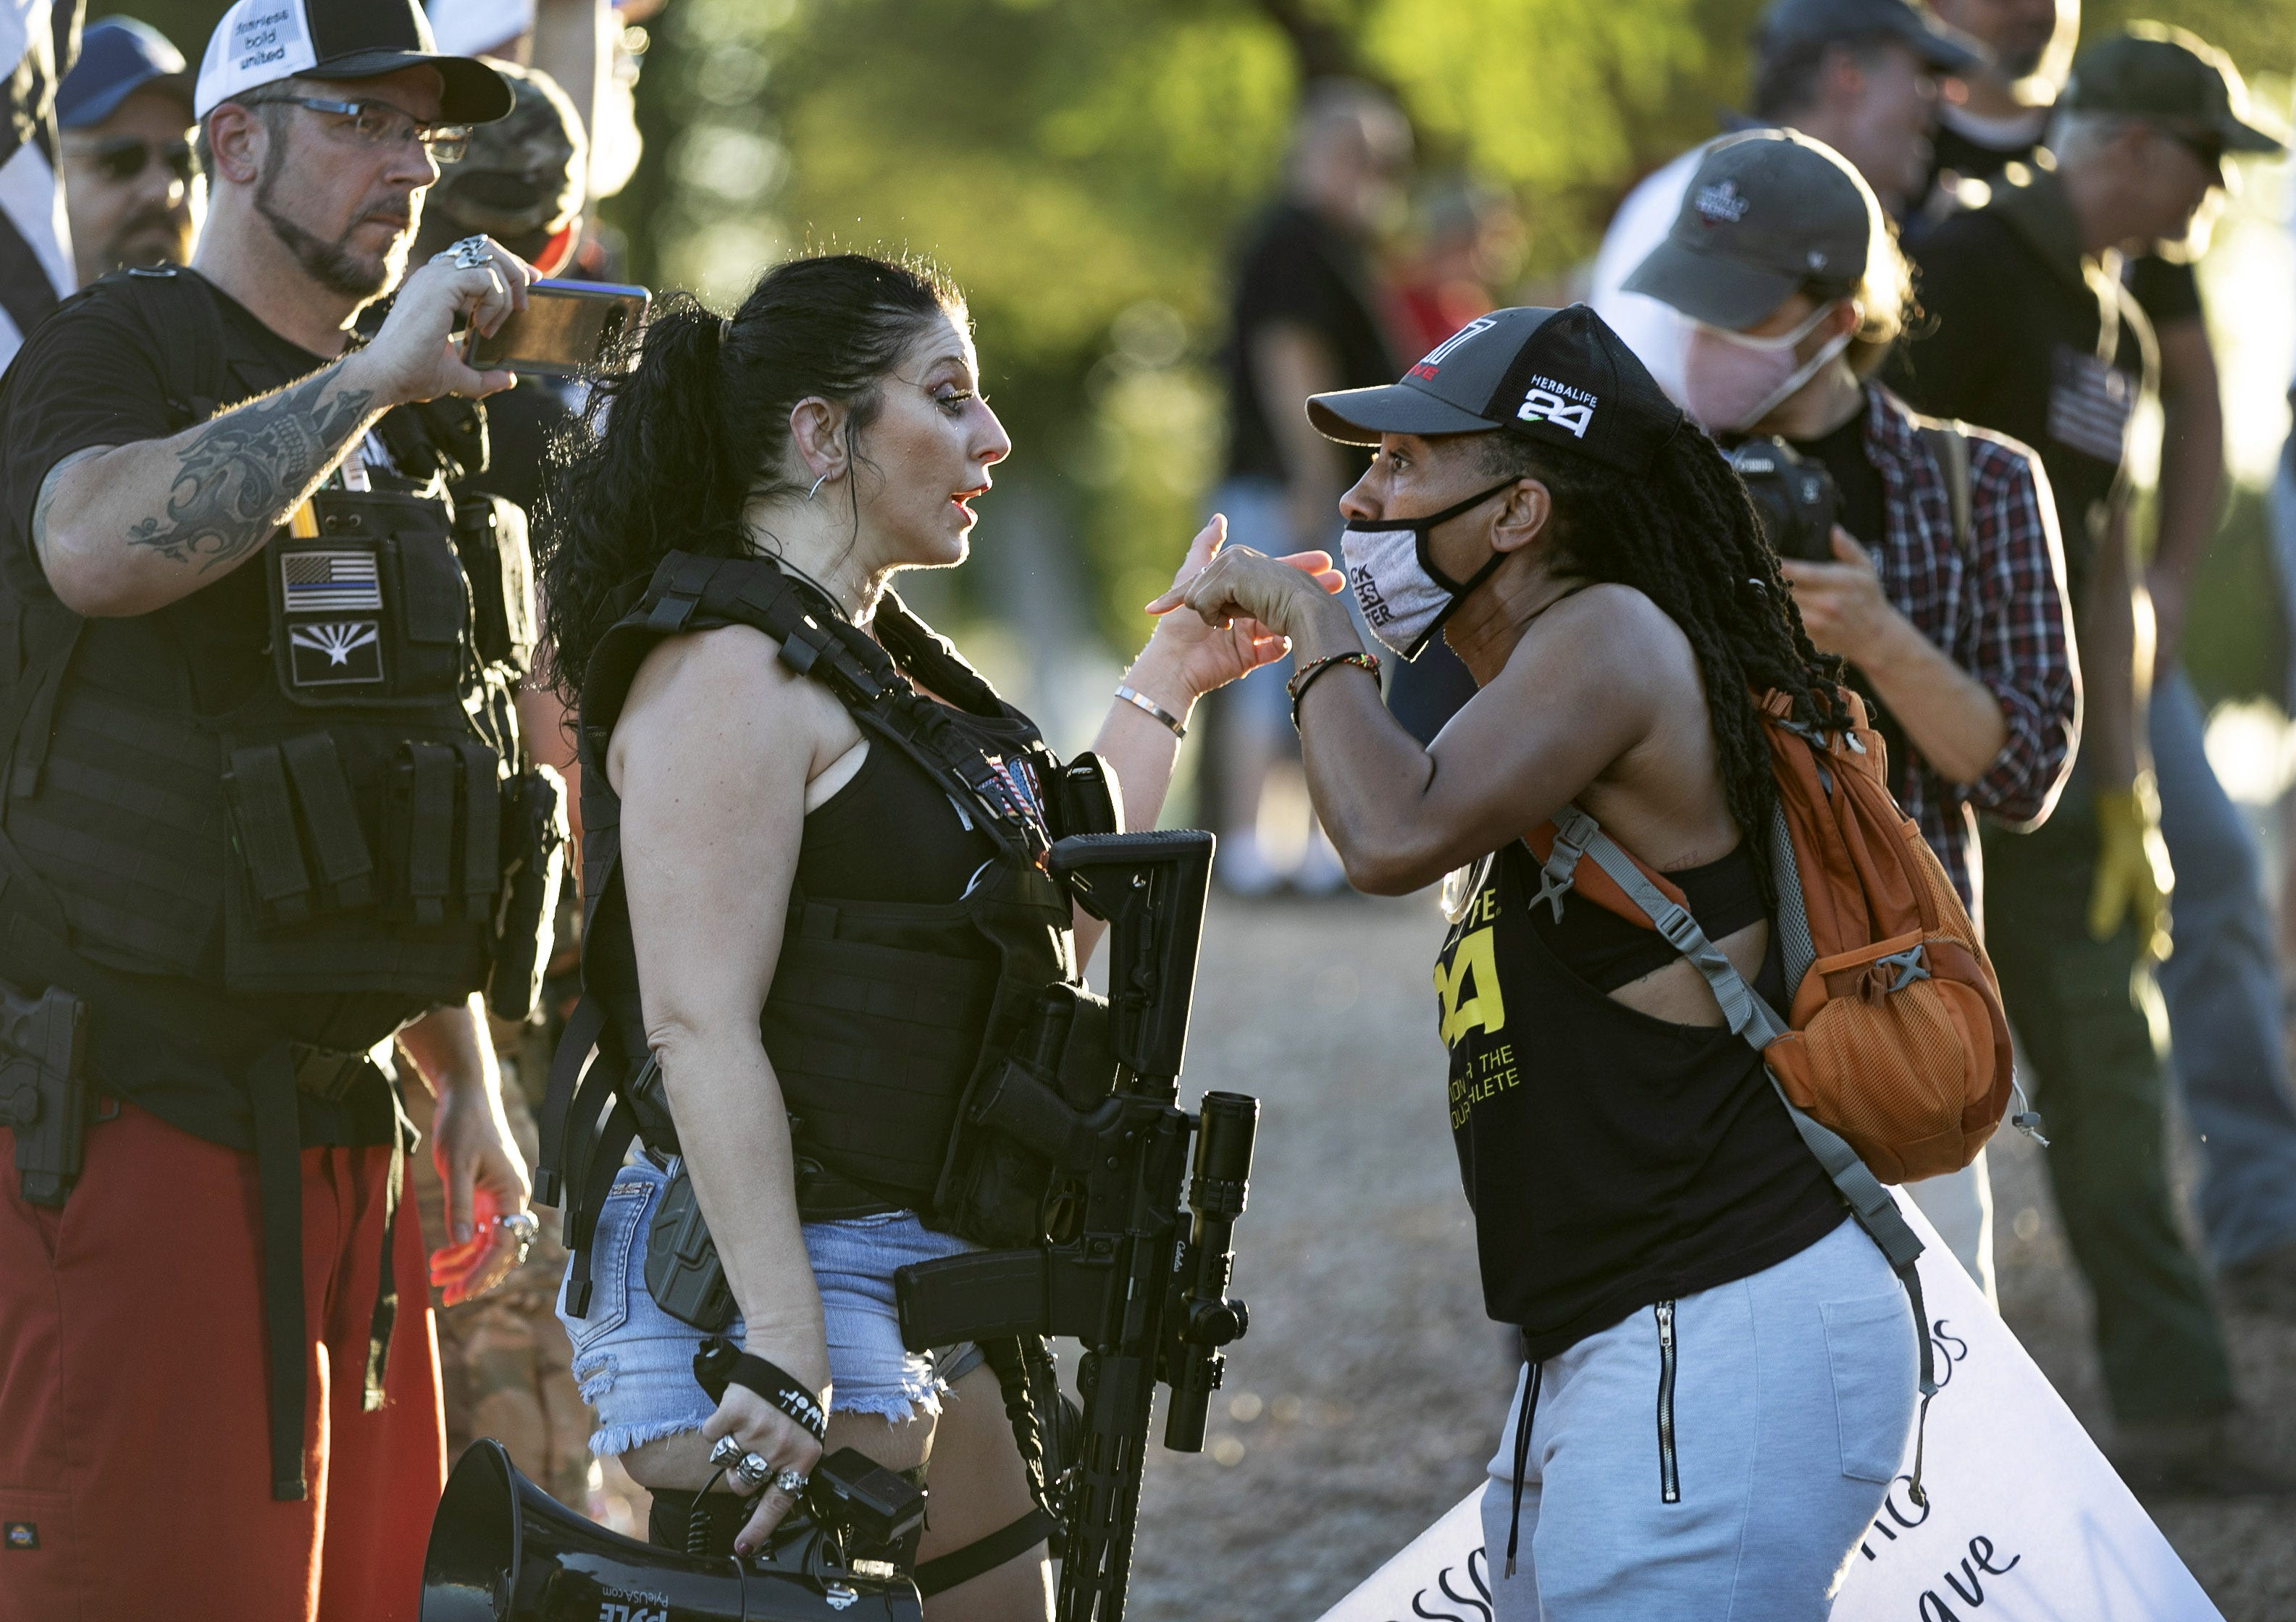 Jennifer Harrison (left) of the AZ Patriots argues with a protester calling for ending systematic racism at an event led by The W.E. Rising Project at the Arizona state Capitol in Phoenix on July 4, 2020.